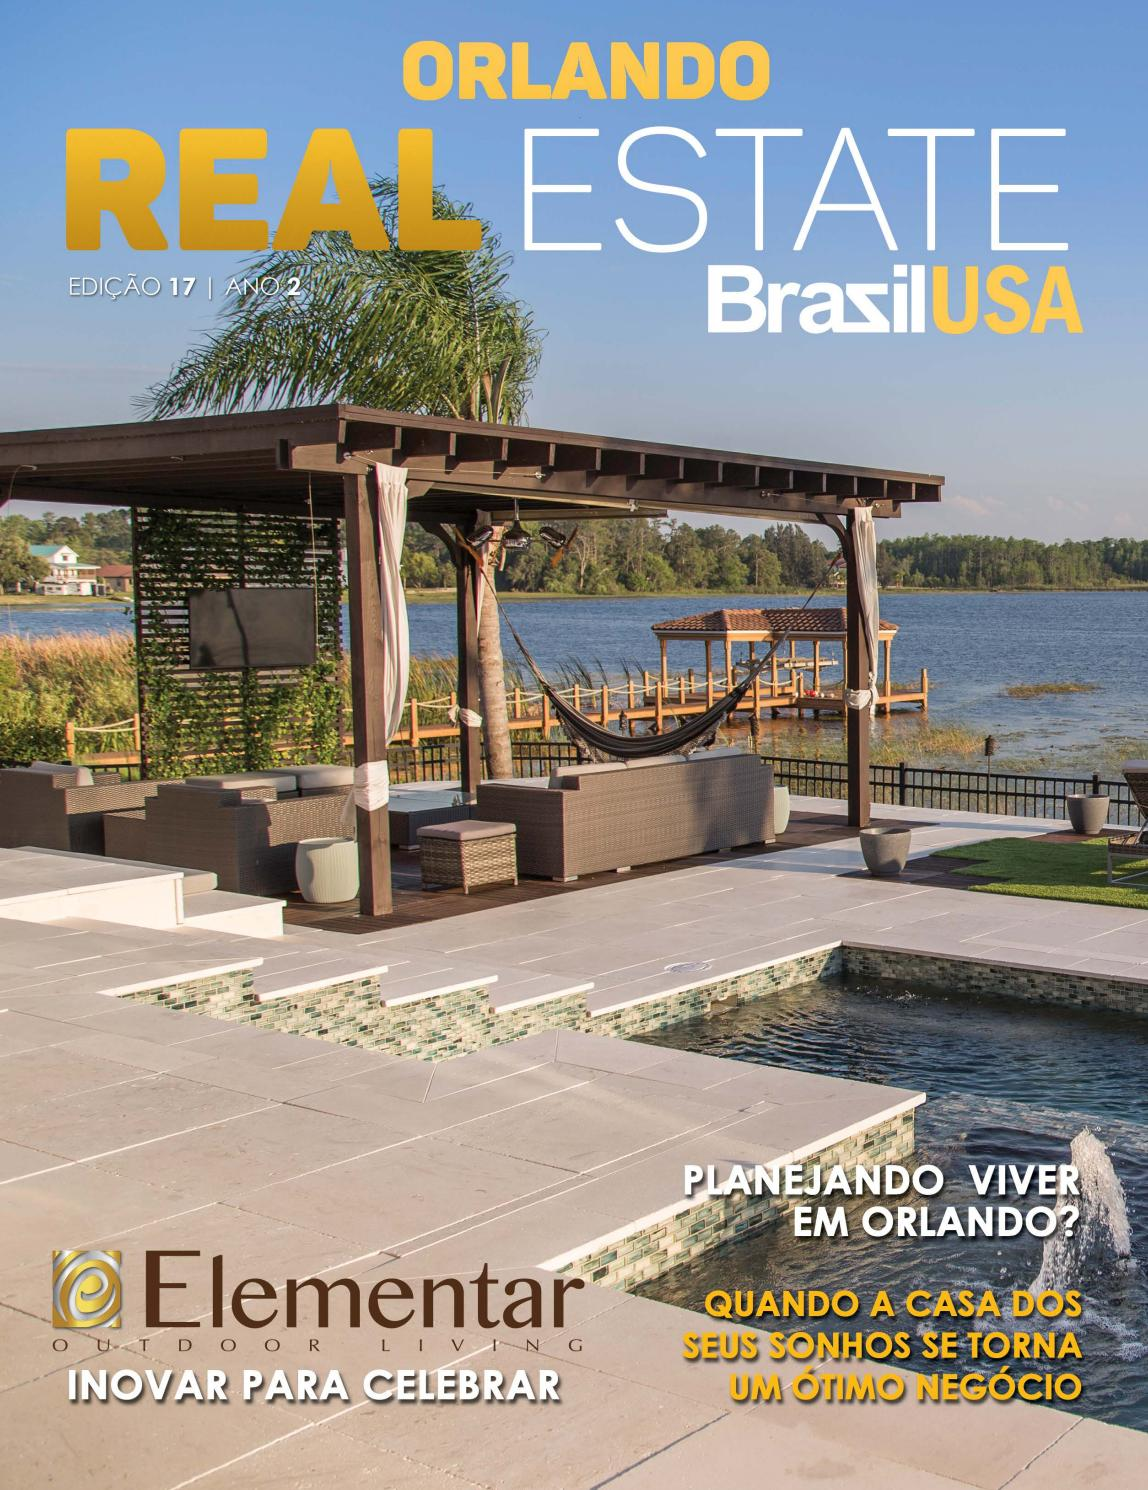 Brazilusa Orlando Real Estate#17 (português) by BRAZIL USA ... on Elementar Outdoor Living id=58686